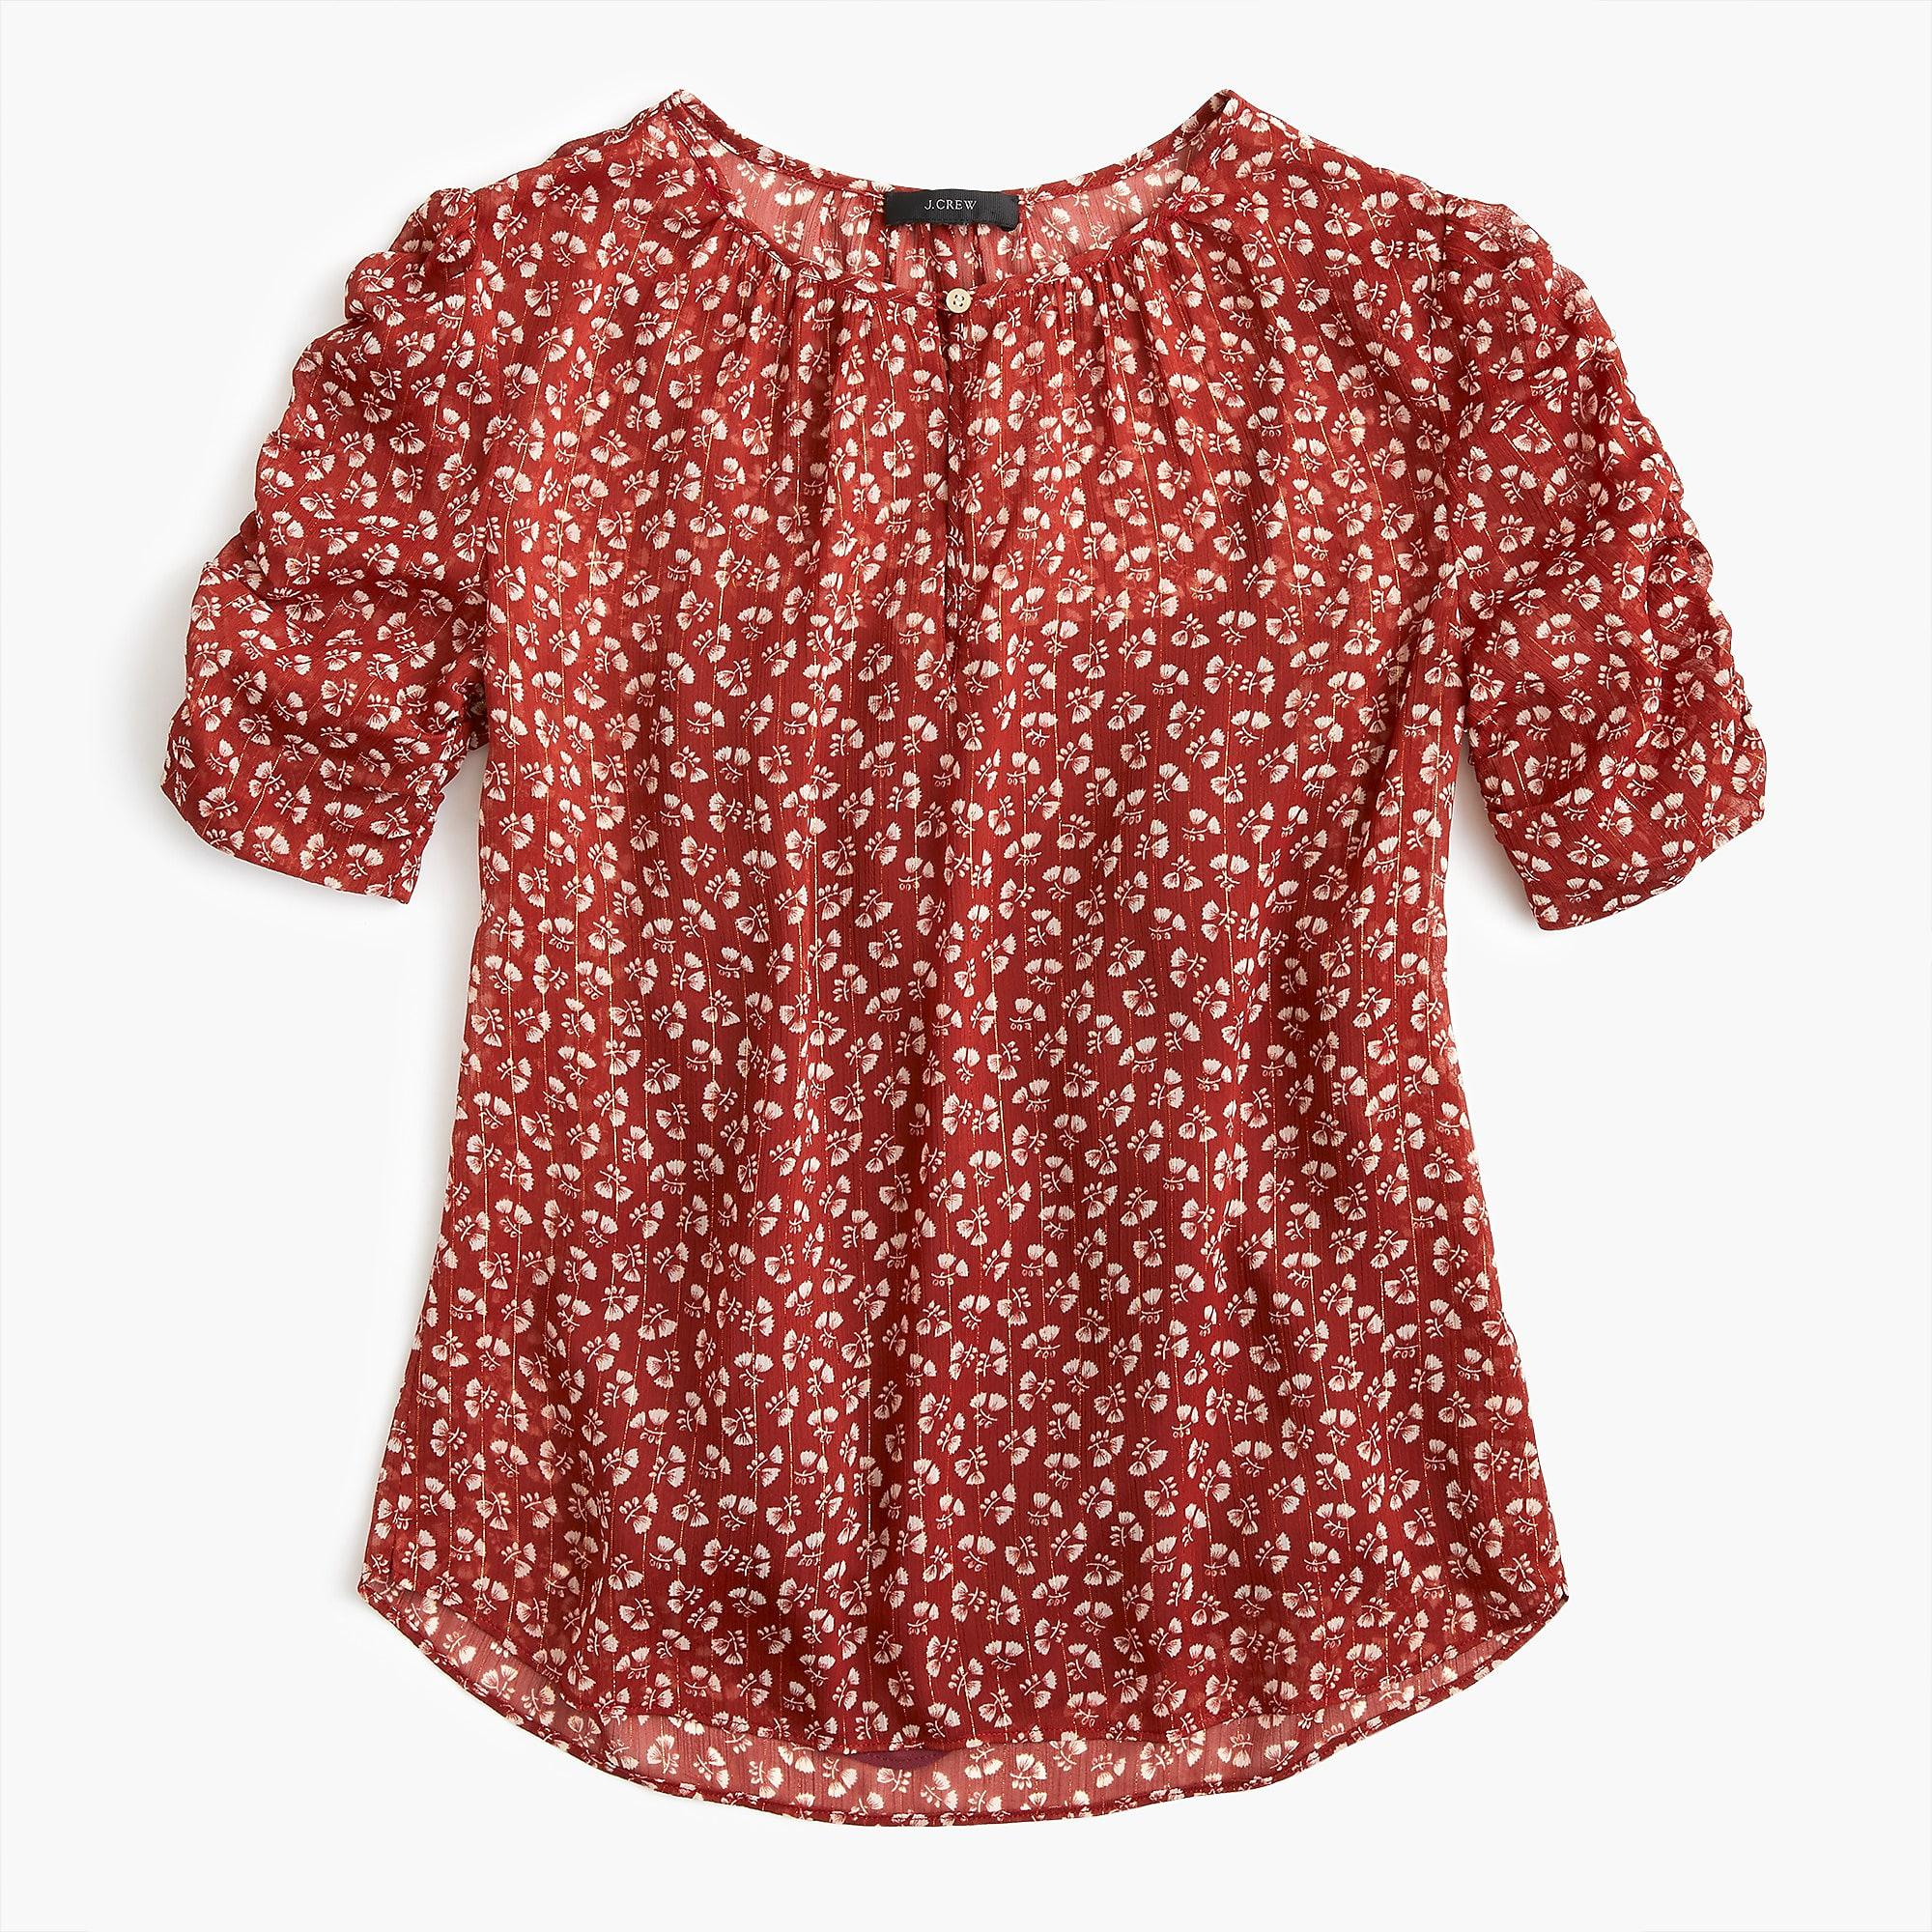 33e8d5dcafd Lyst - J.Crew Ruched-sleeve Top In Sparkle Floral in Red